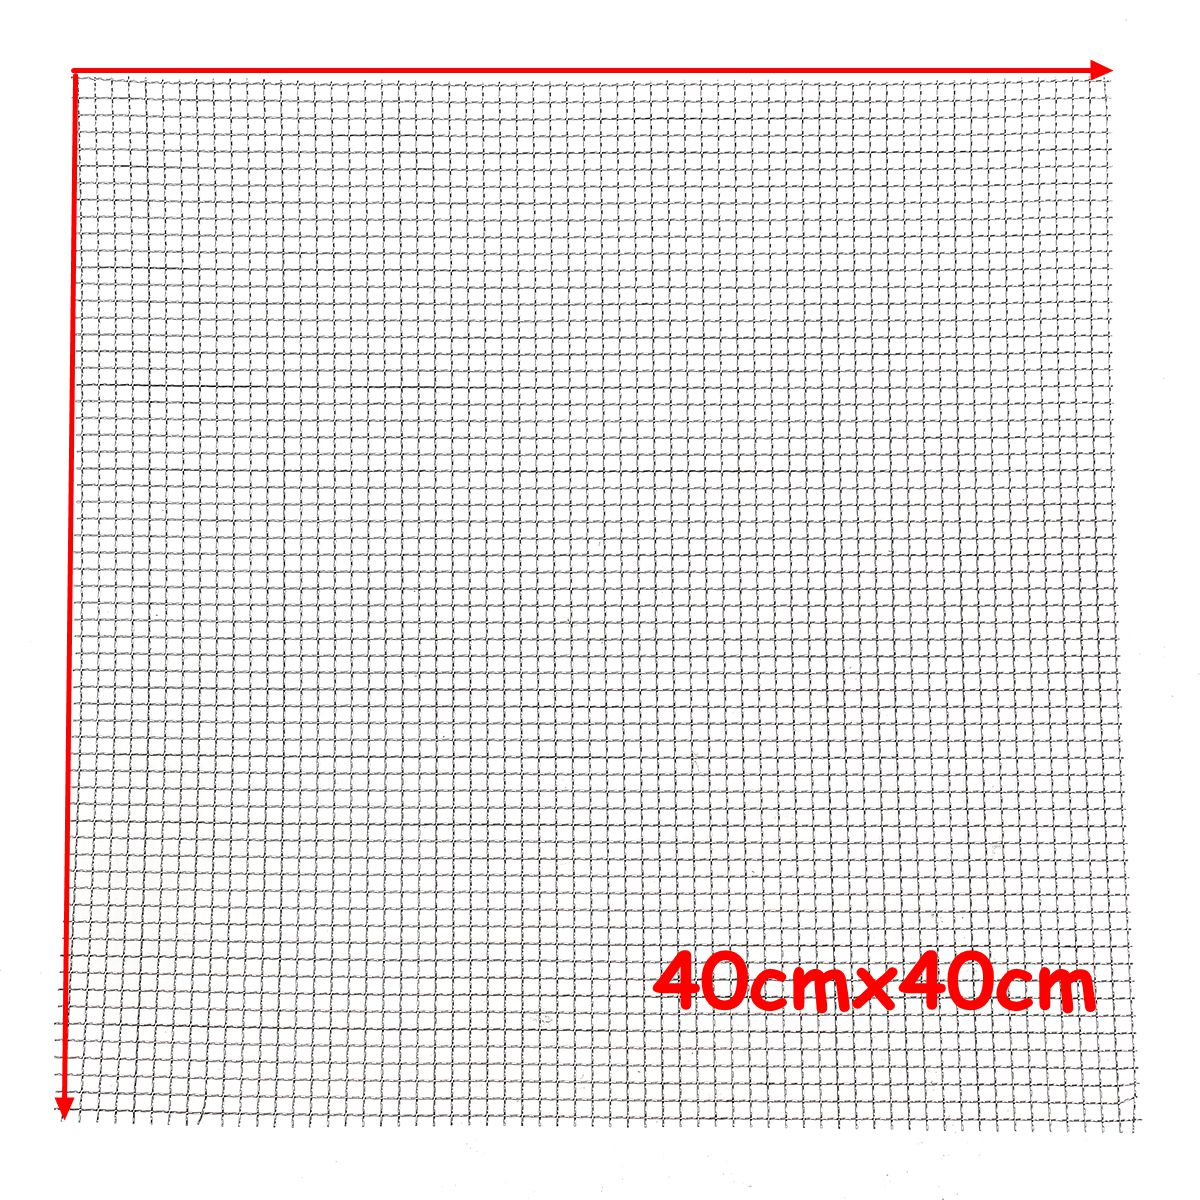 NEW Stainless Steel 304 Mesh #4 .047 Wire Cloth Screen Filter 16''x16'' 40cm x 40cm пиджак mango man mango man he002emtso81 page 10